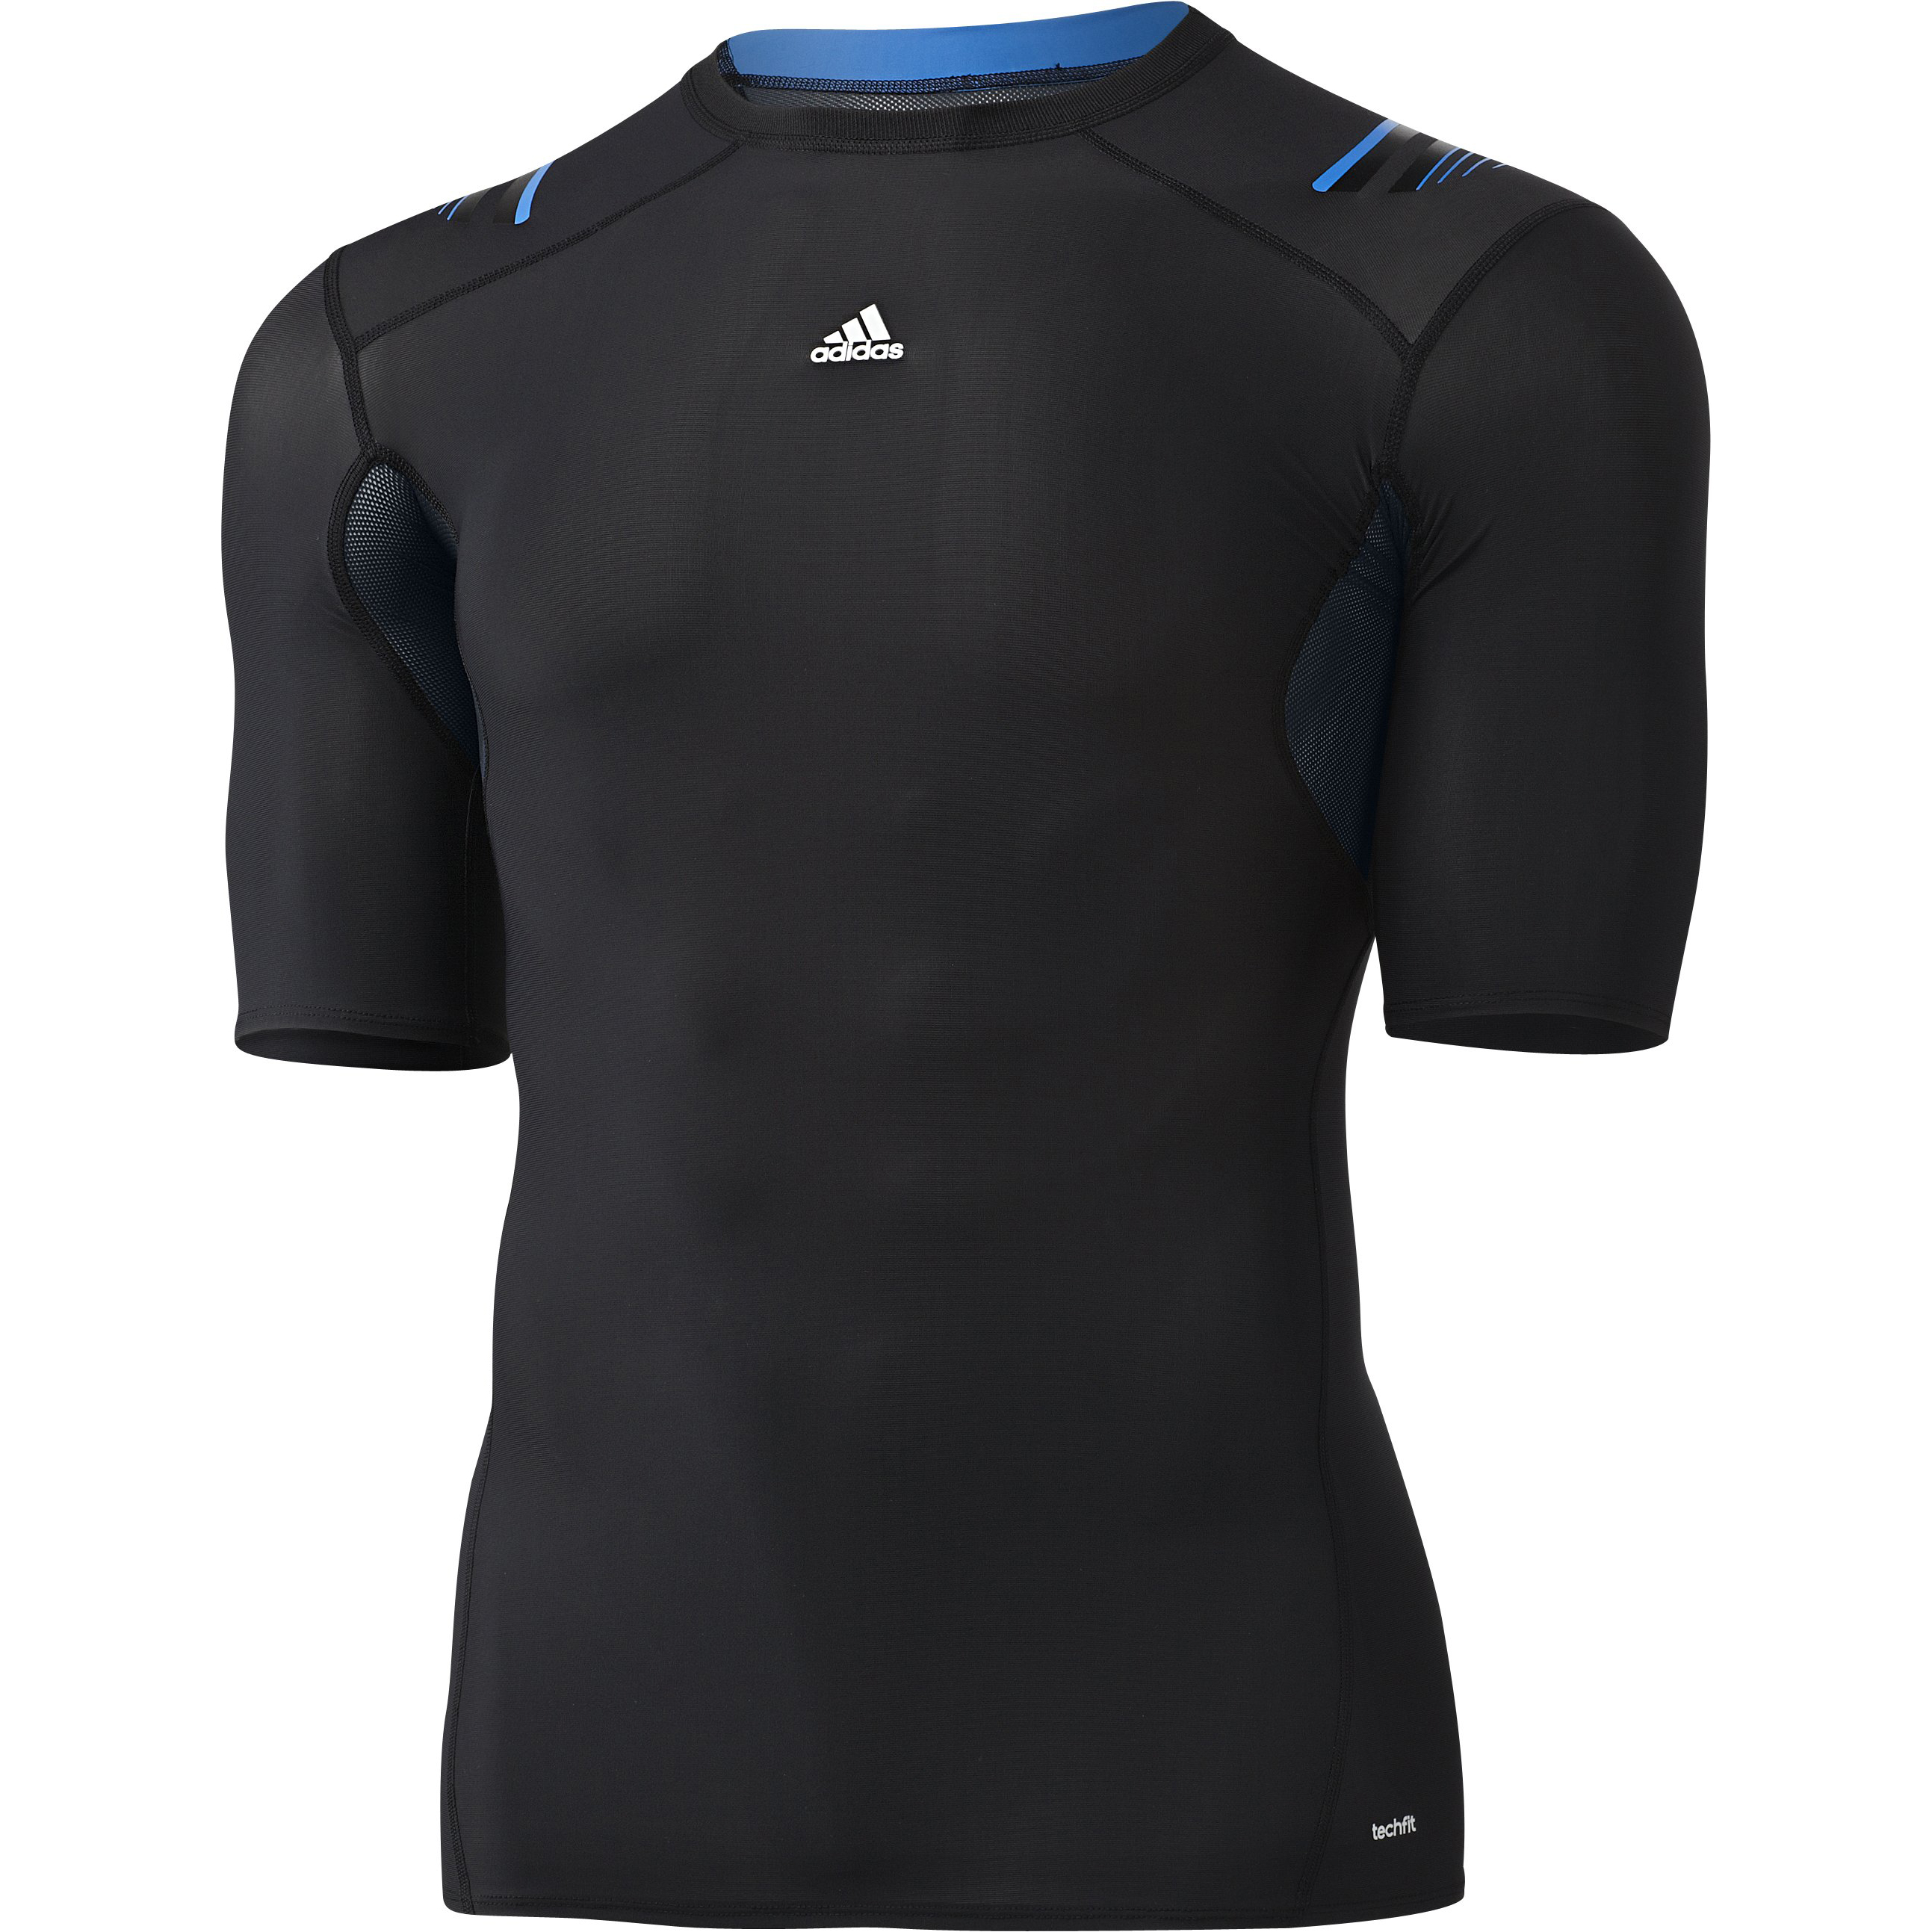 Wiggle | Adidas Techfit Preparation PowerWeb Short Sleeve Tee ...